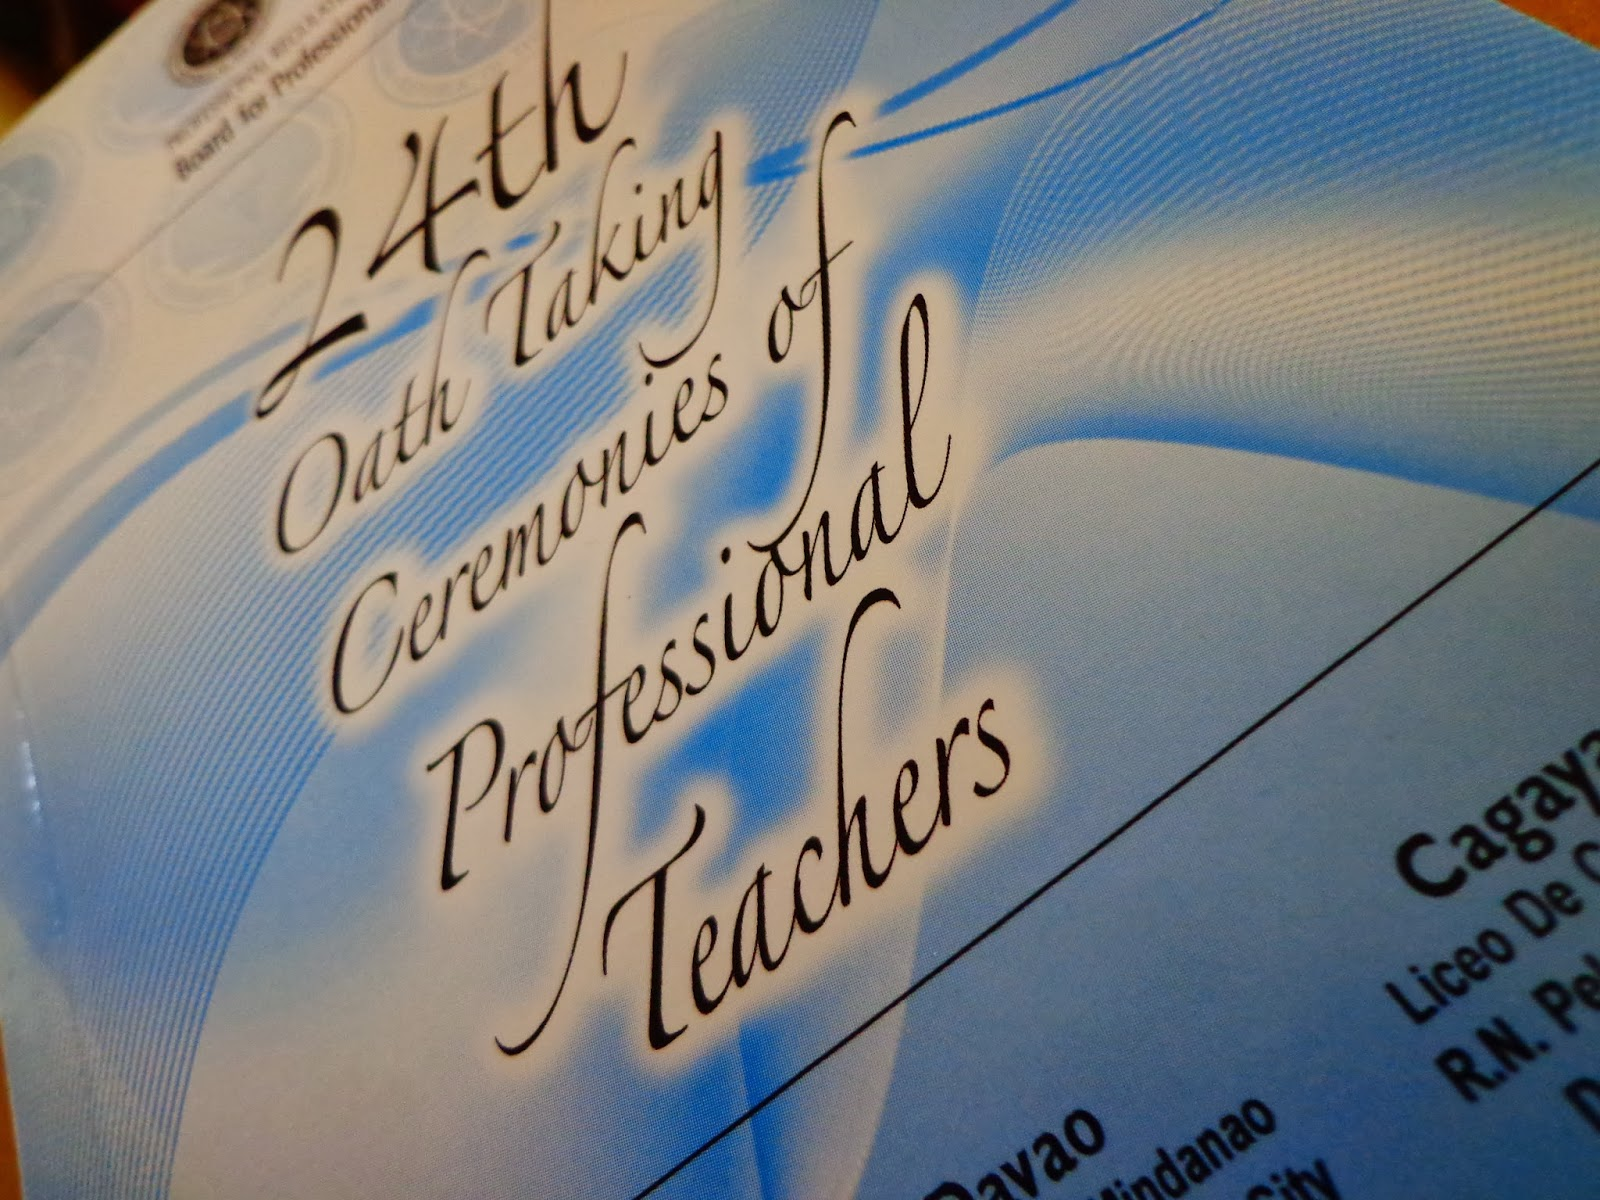 24th Oath Taking Ceremonies of Professional Teachers